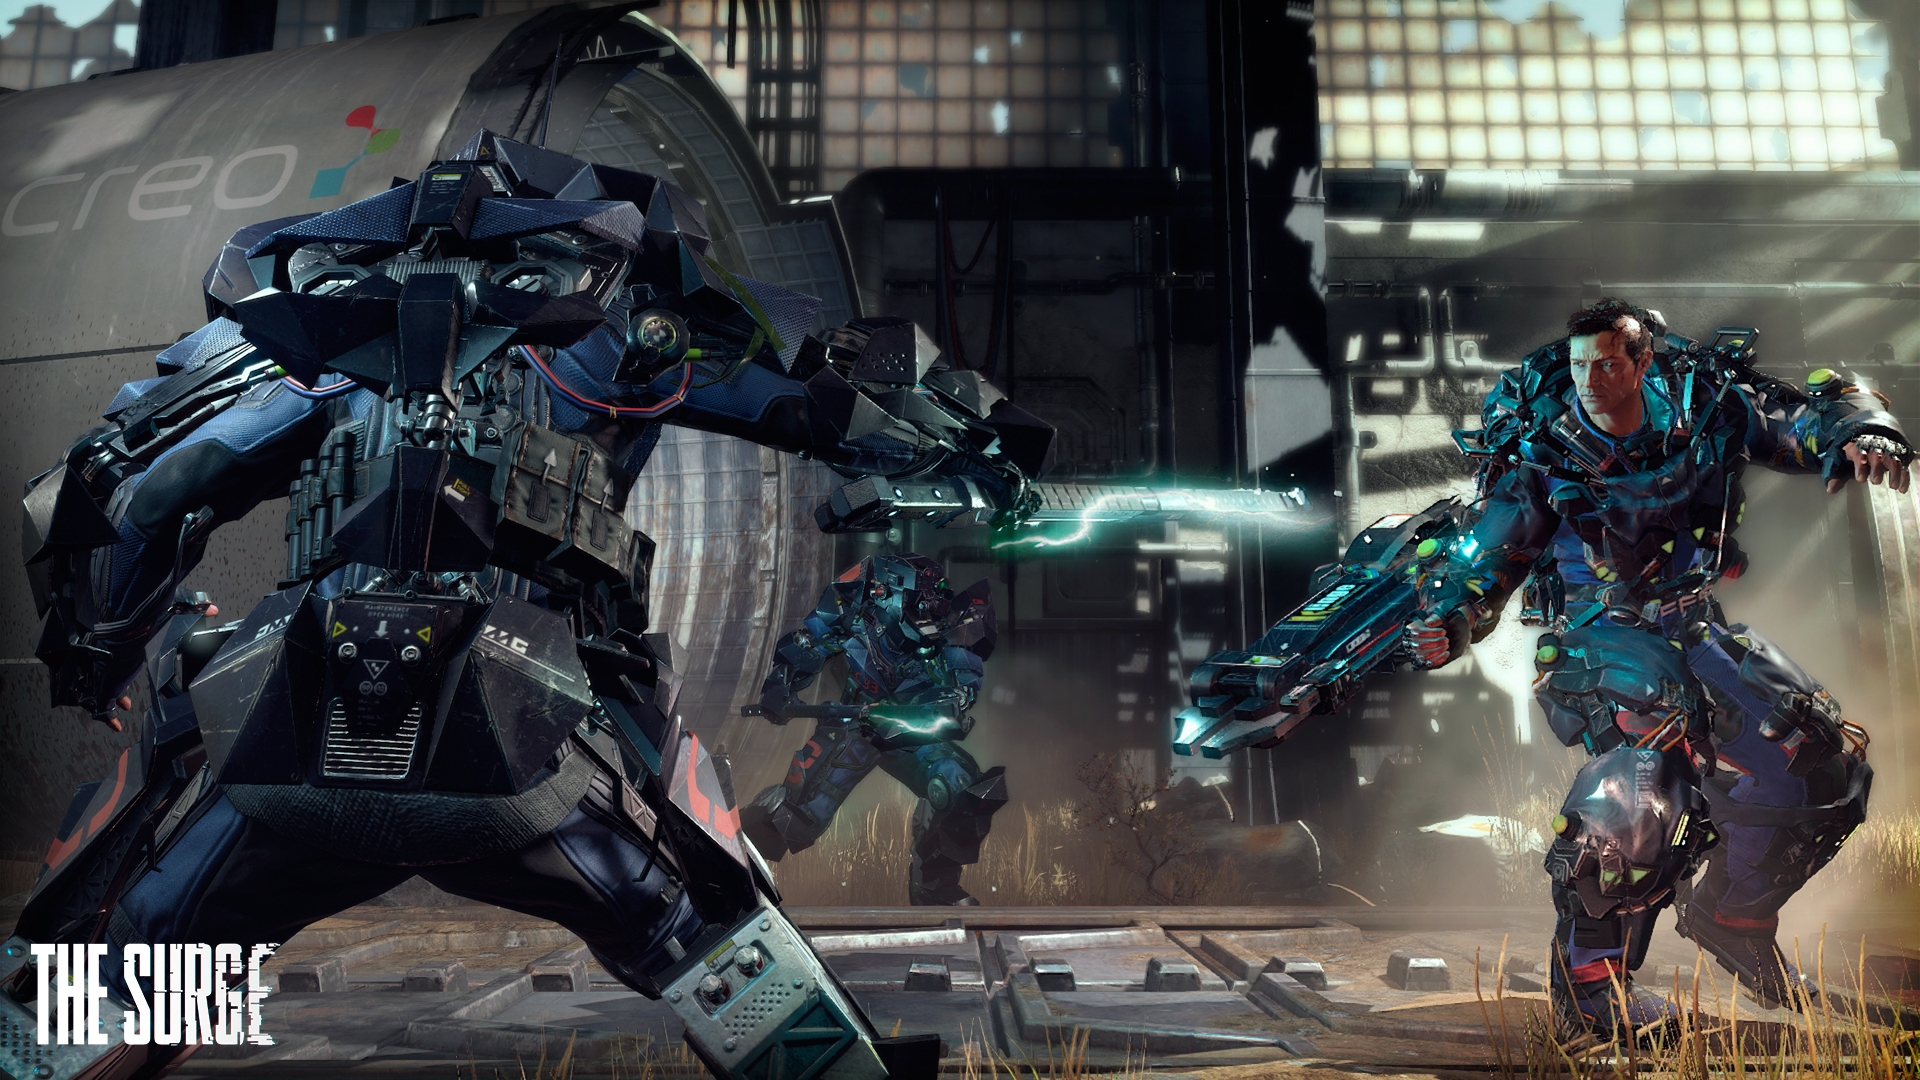 The Surge Pictures